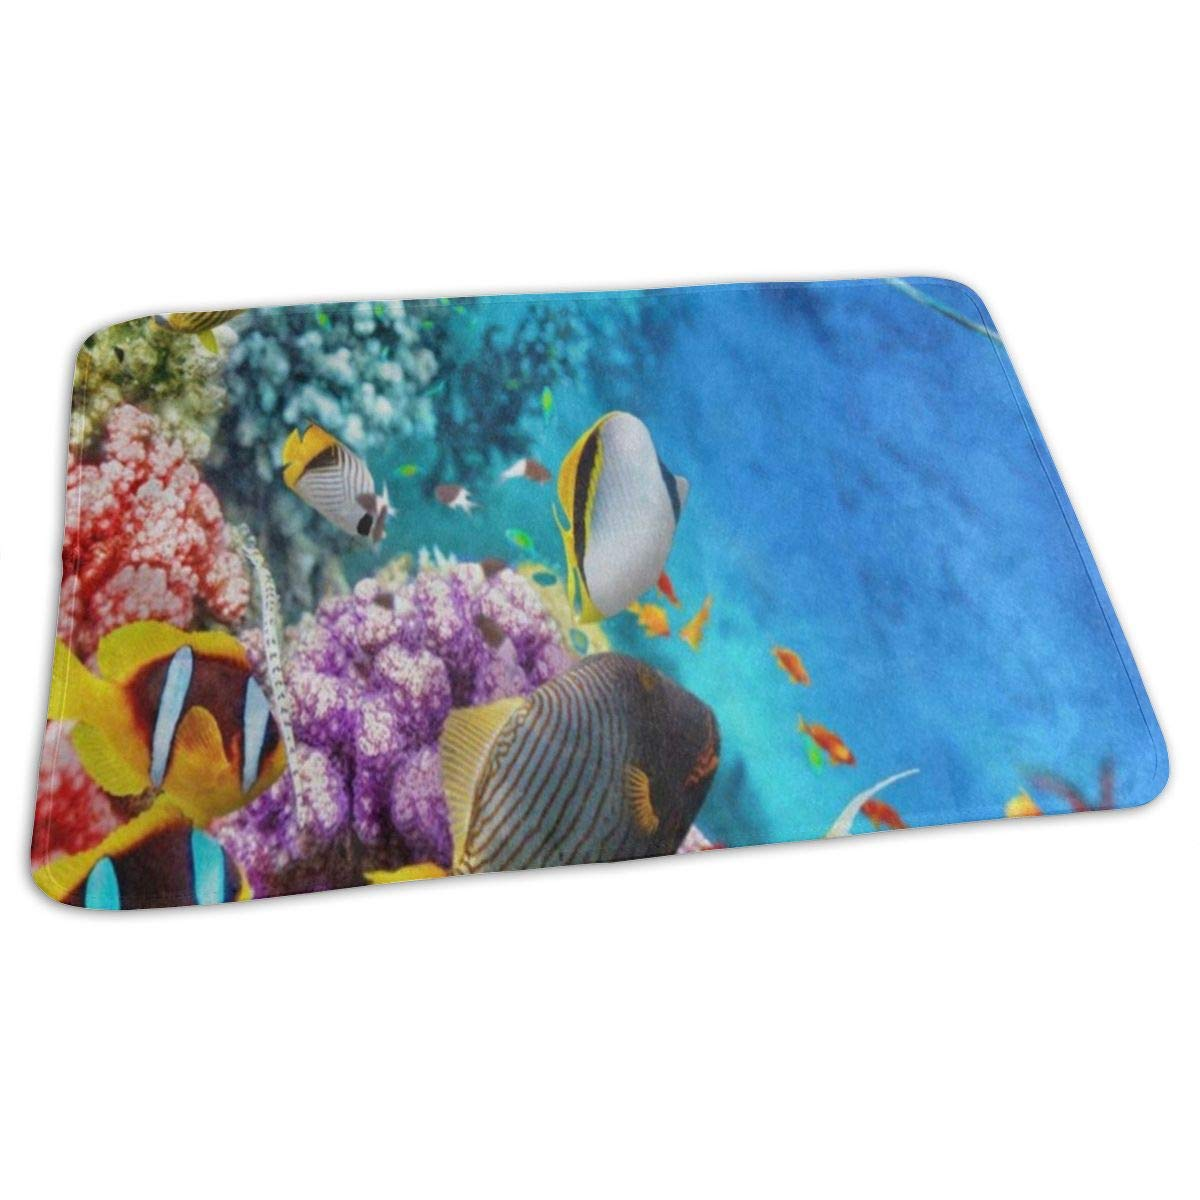 Changing Pad Beautiful Underwater World Fish Coral Reef Baby Diaper Incontinence Pad Mat Amazing Toddler Children Mattress Pad Sheet for Any Places for Home Travel Bed Play Stroller Crib Car